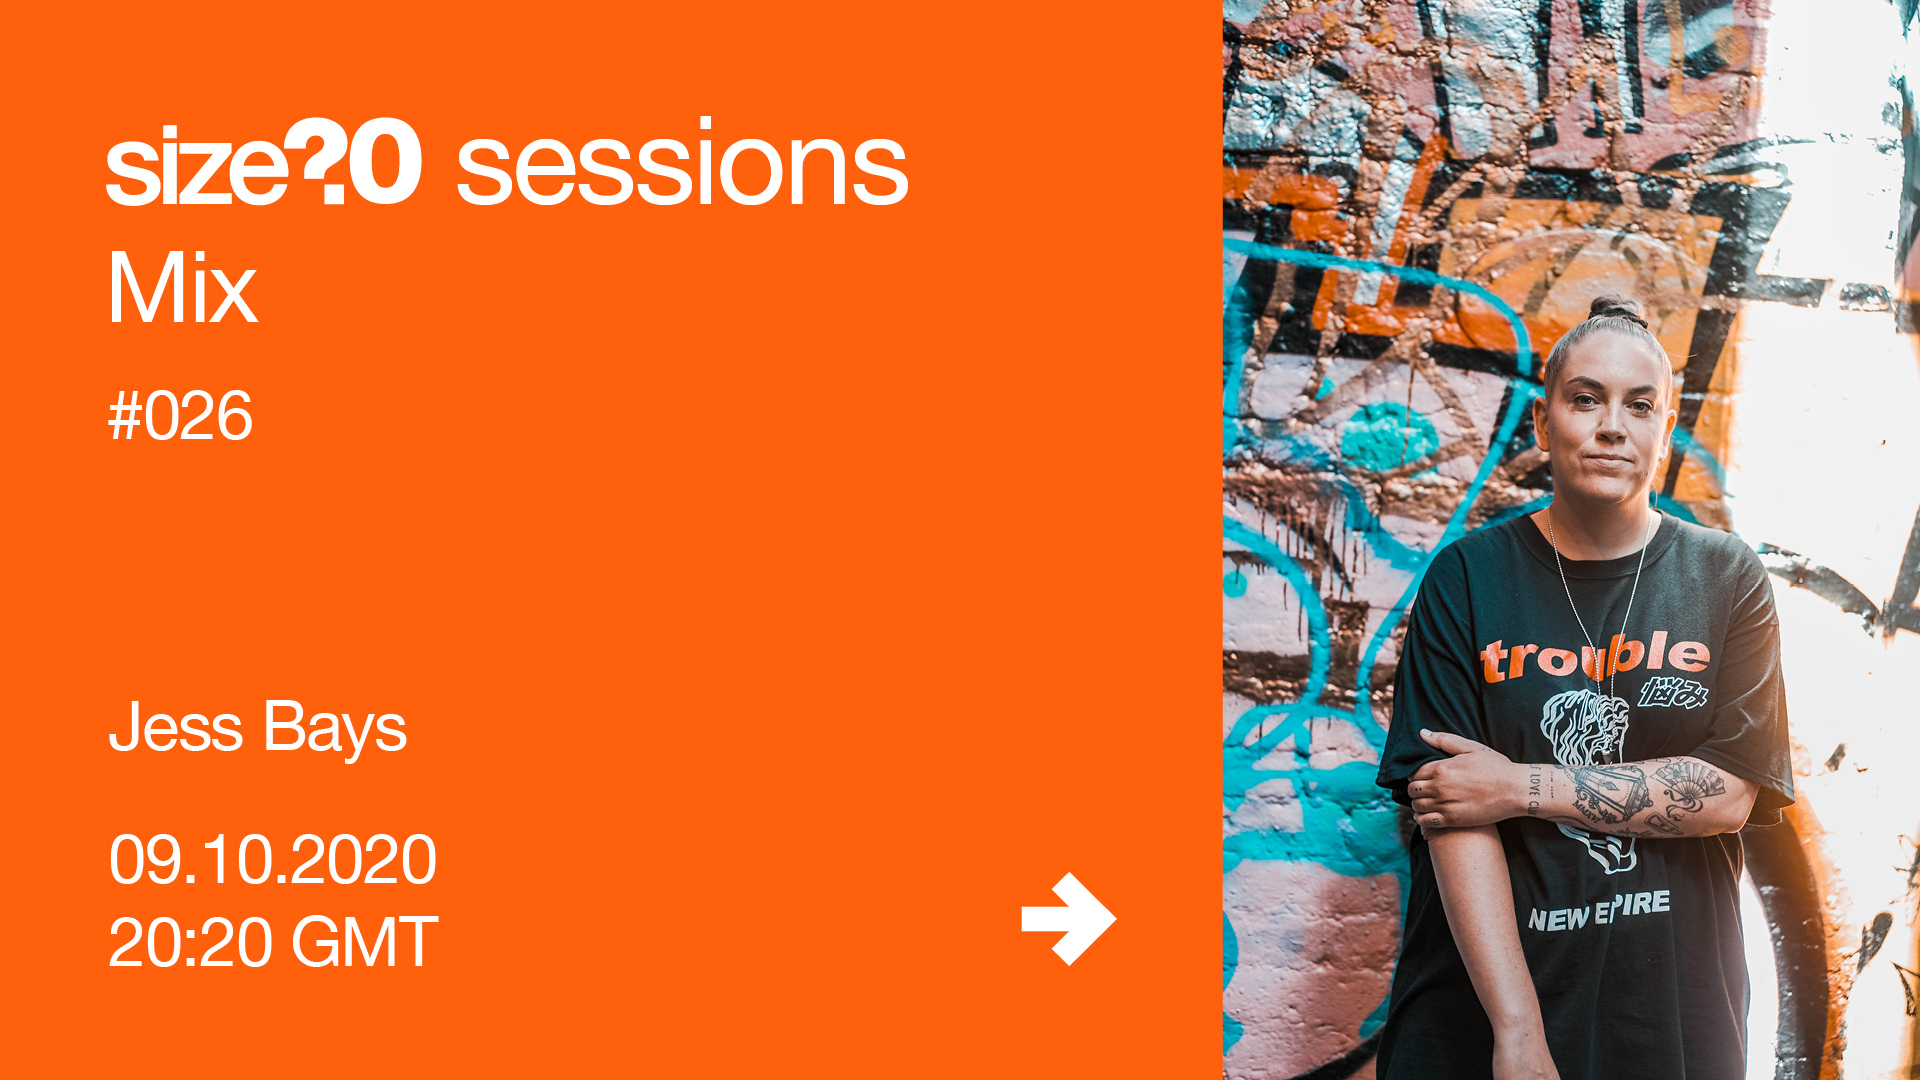 Jess Bays - size? sessions Mix